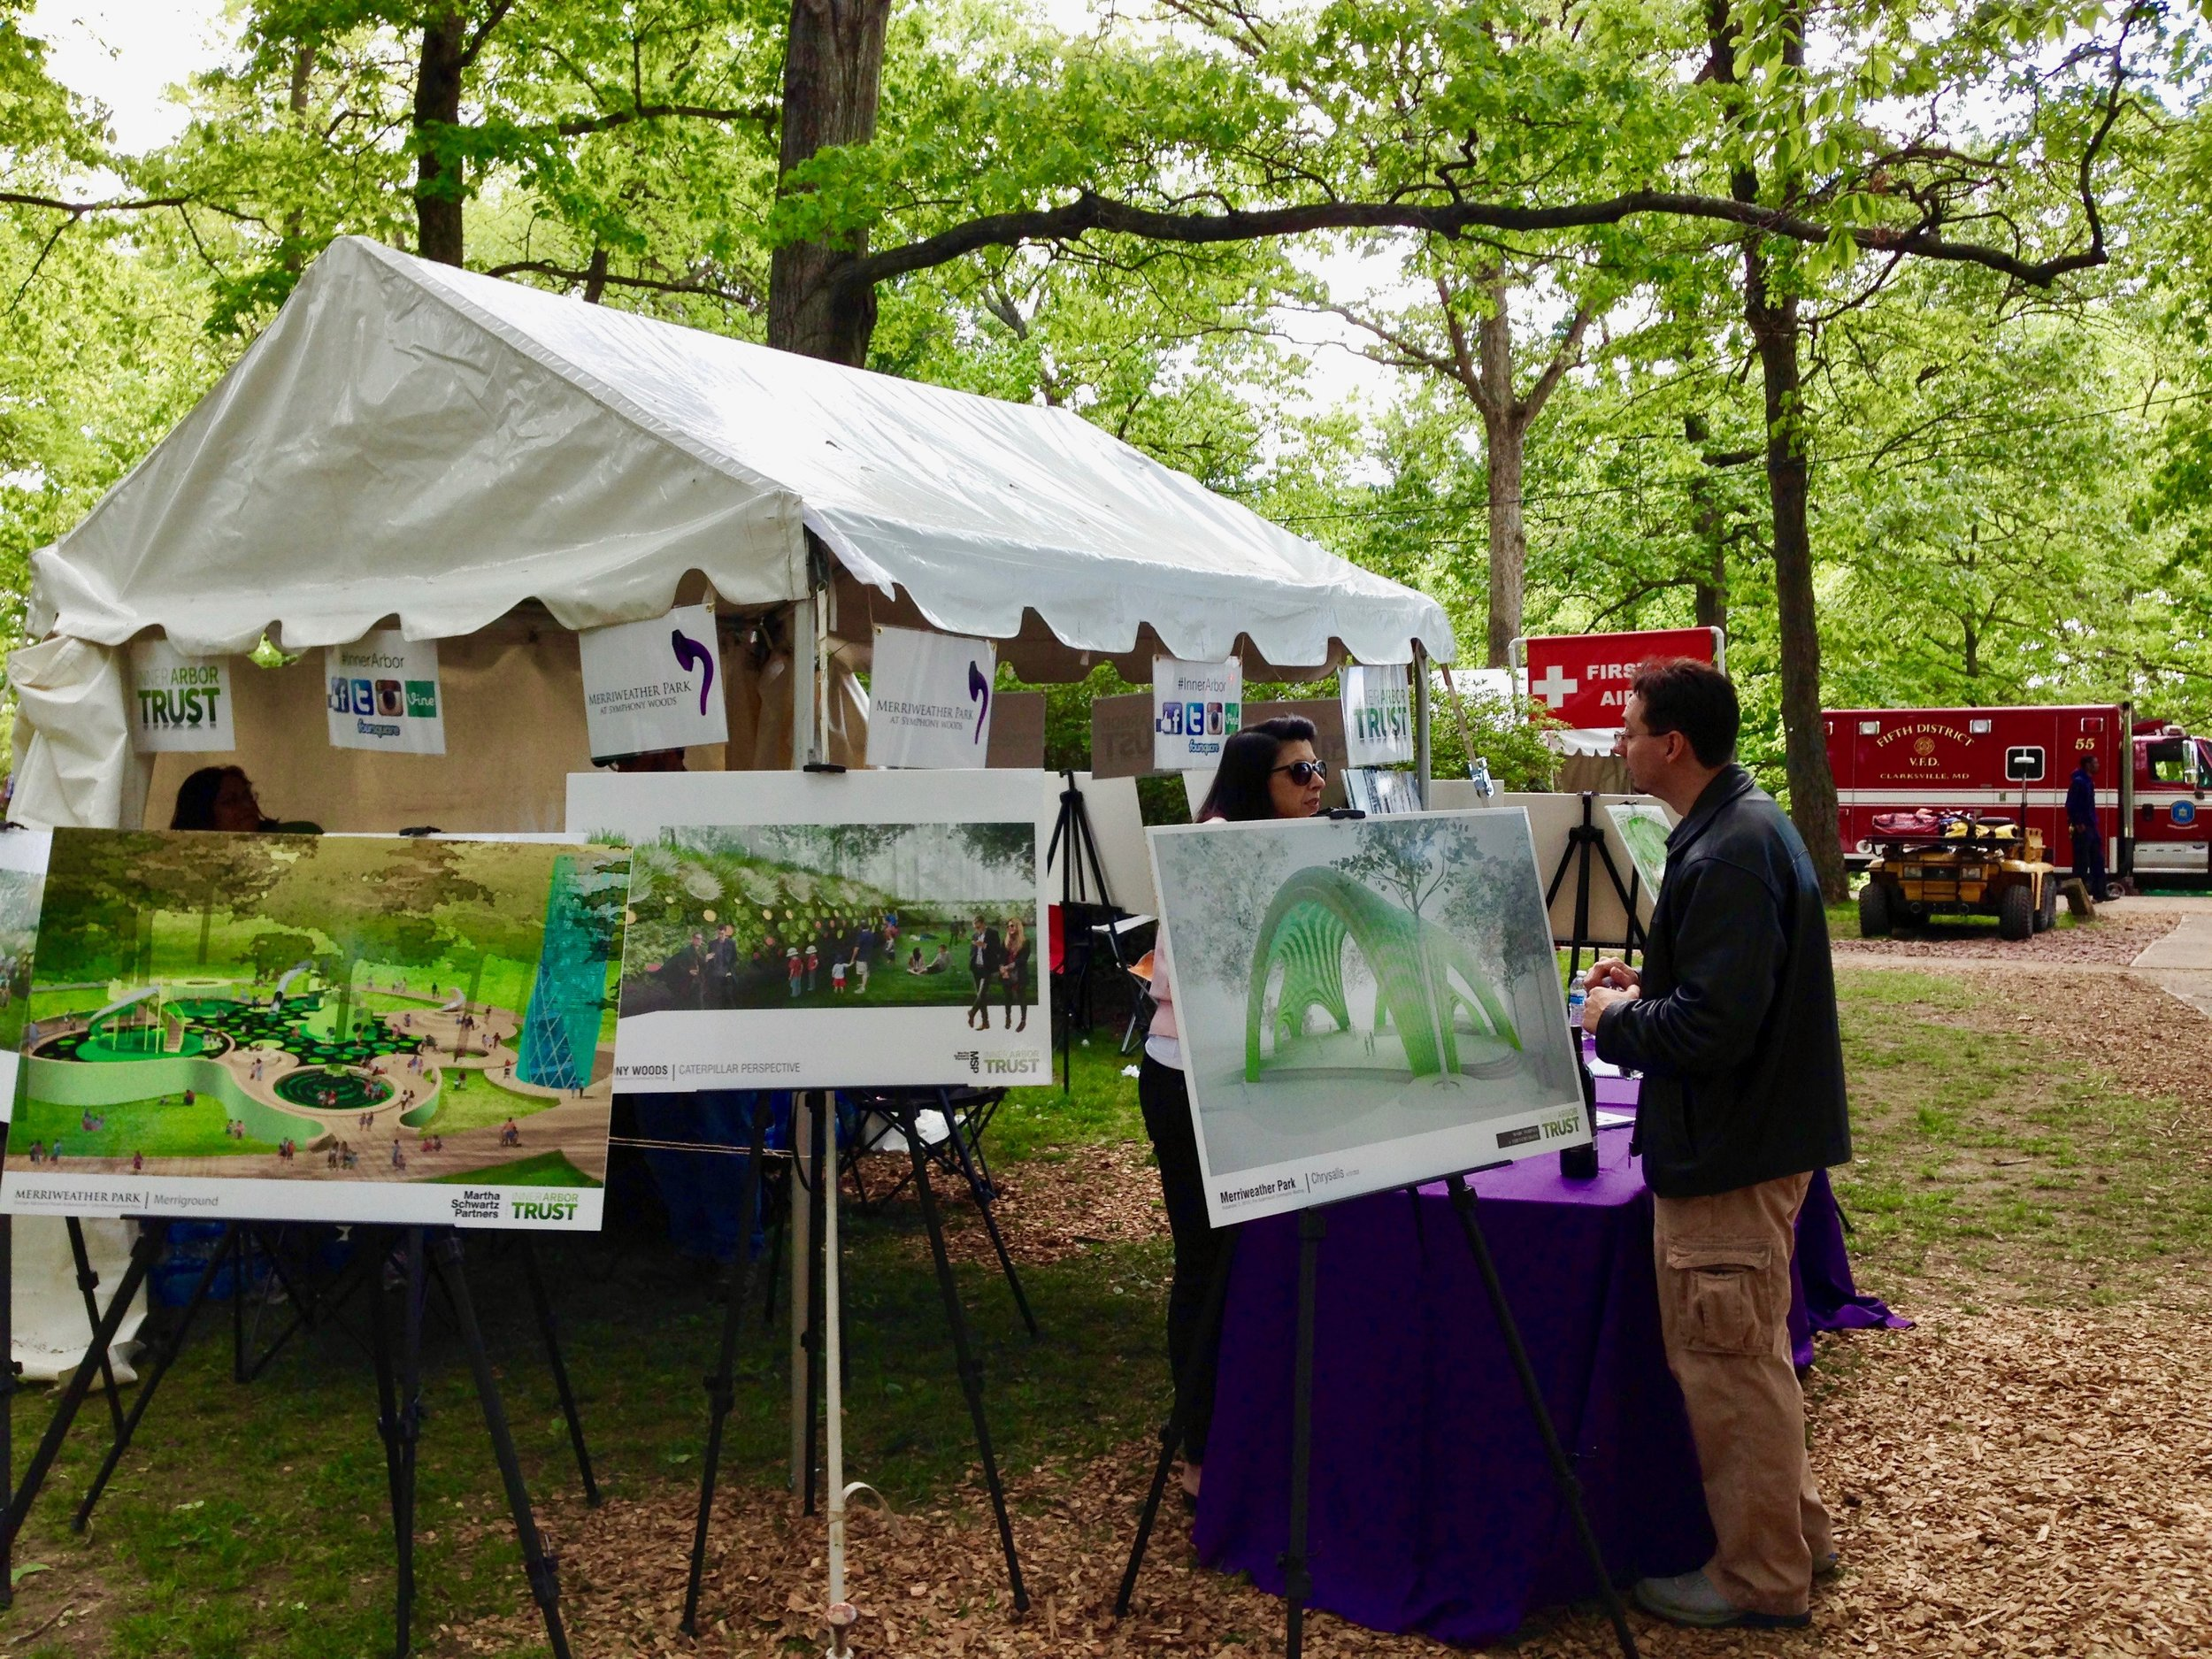 inner-arbor-trust-booth-at-witw 2.jpg